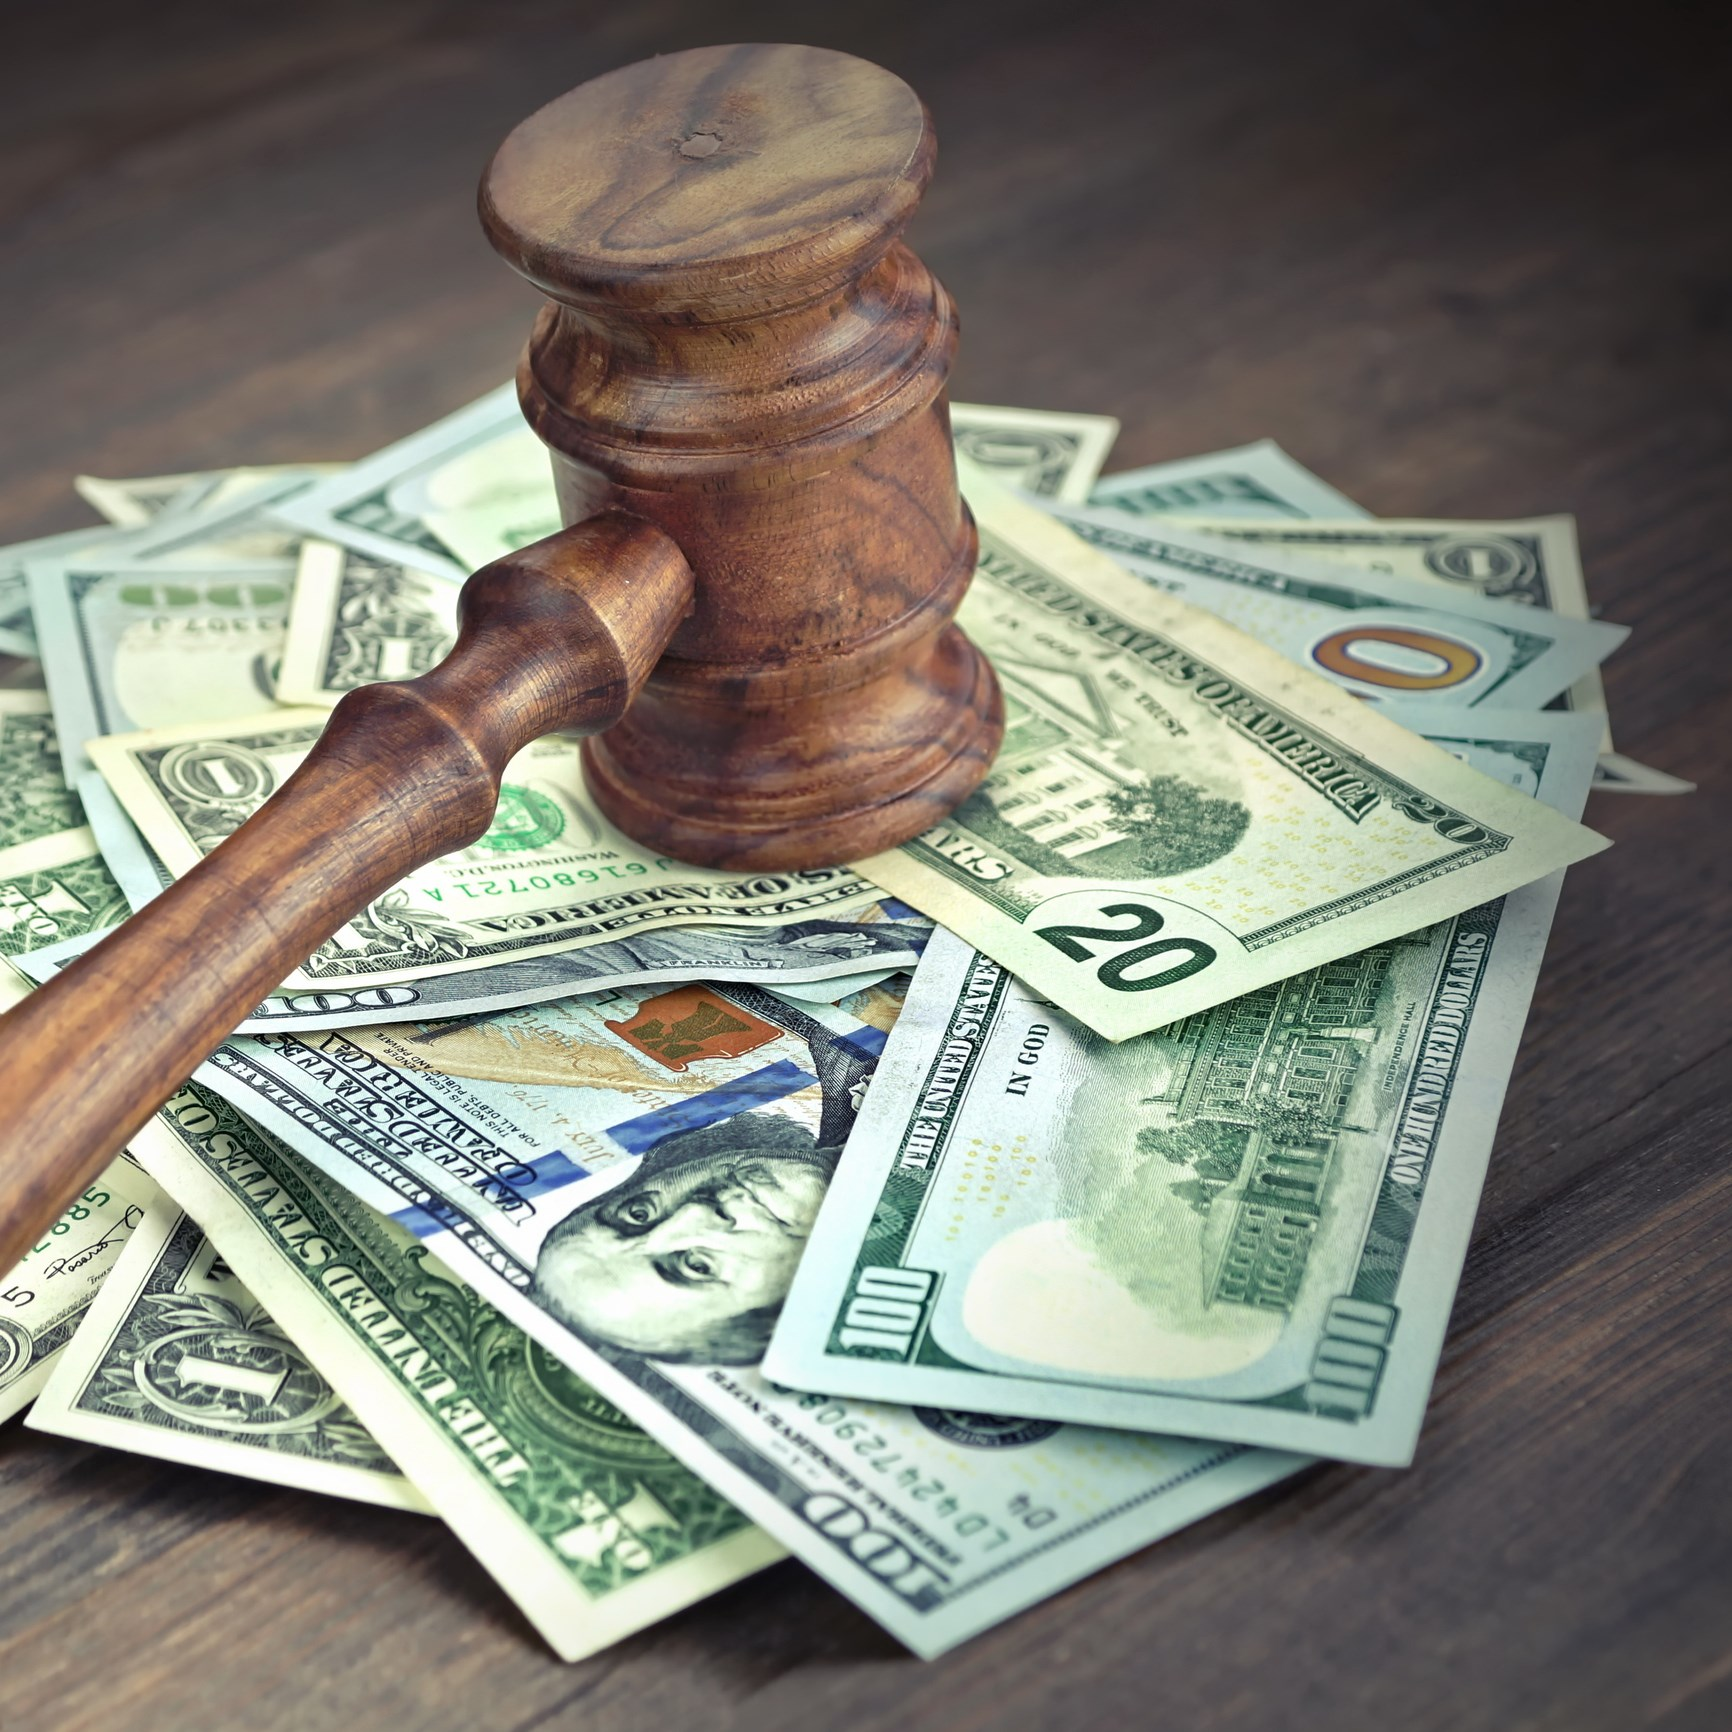 HIPAA Fines to be Accompanied by Corrective Action Plans